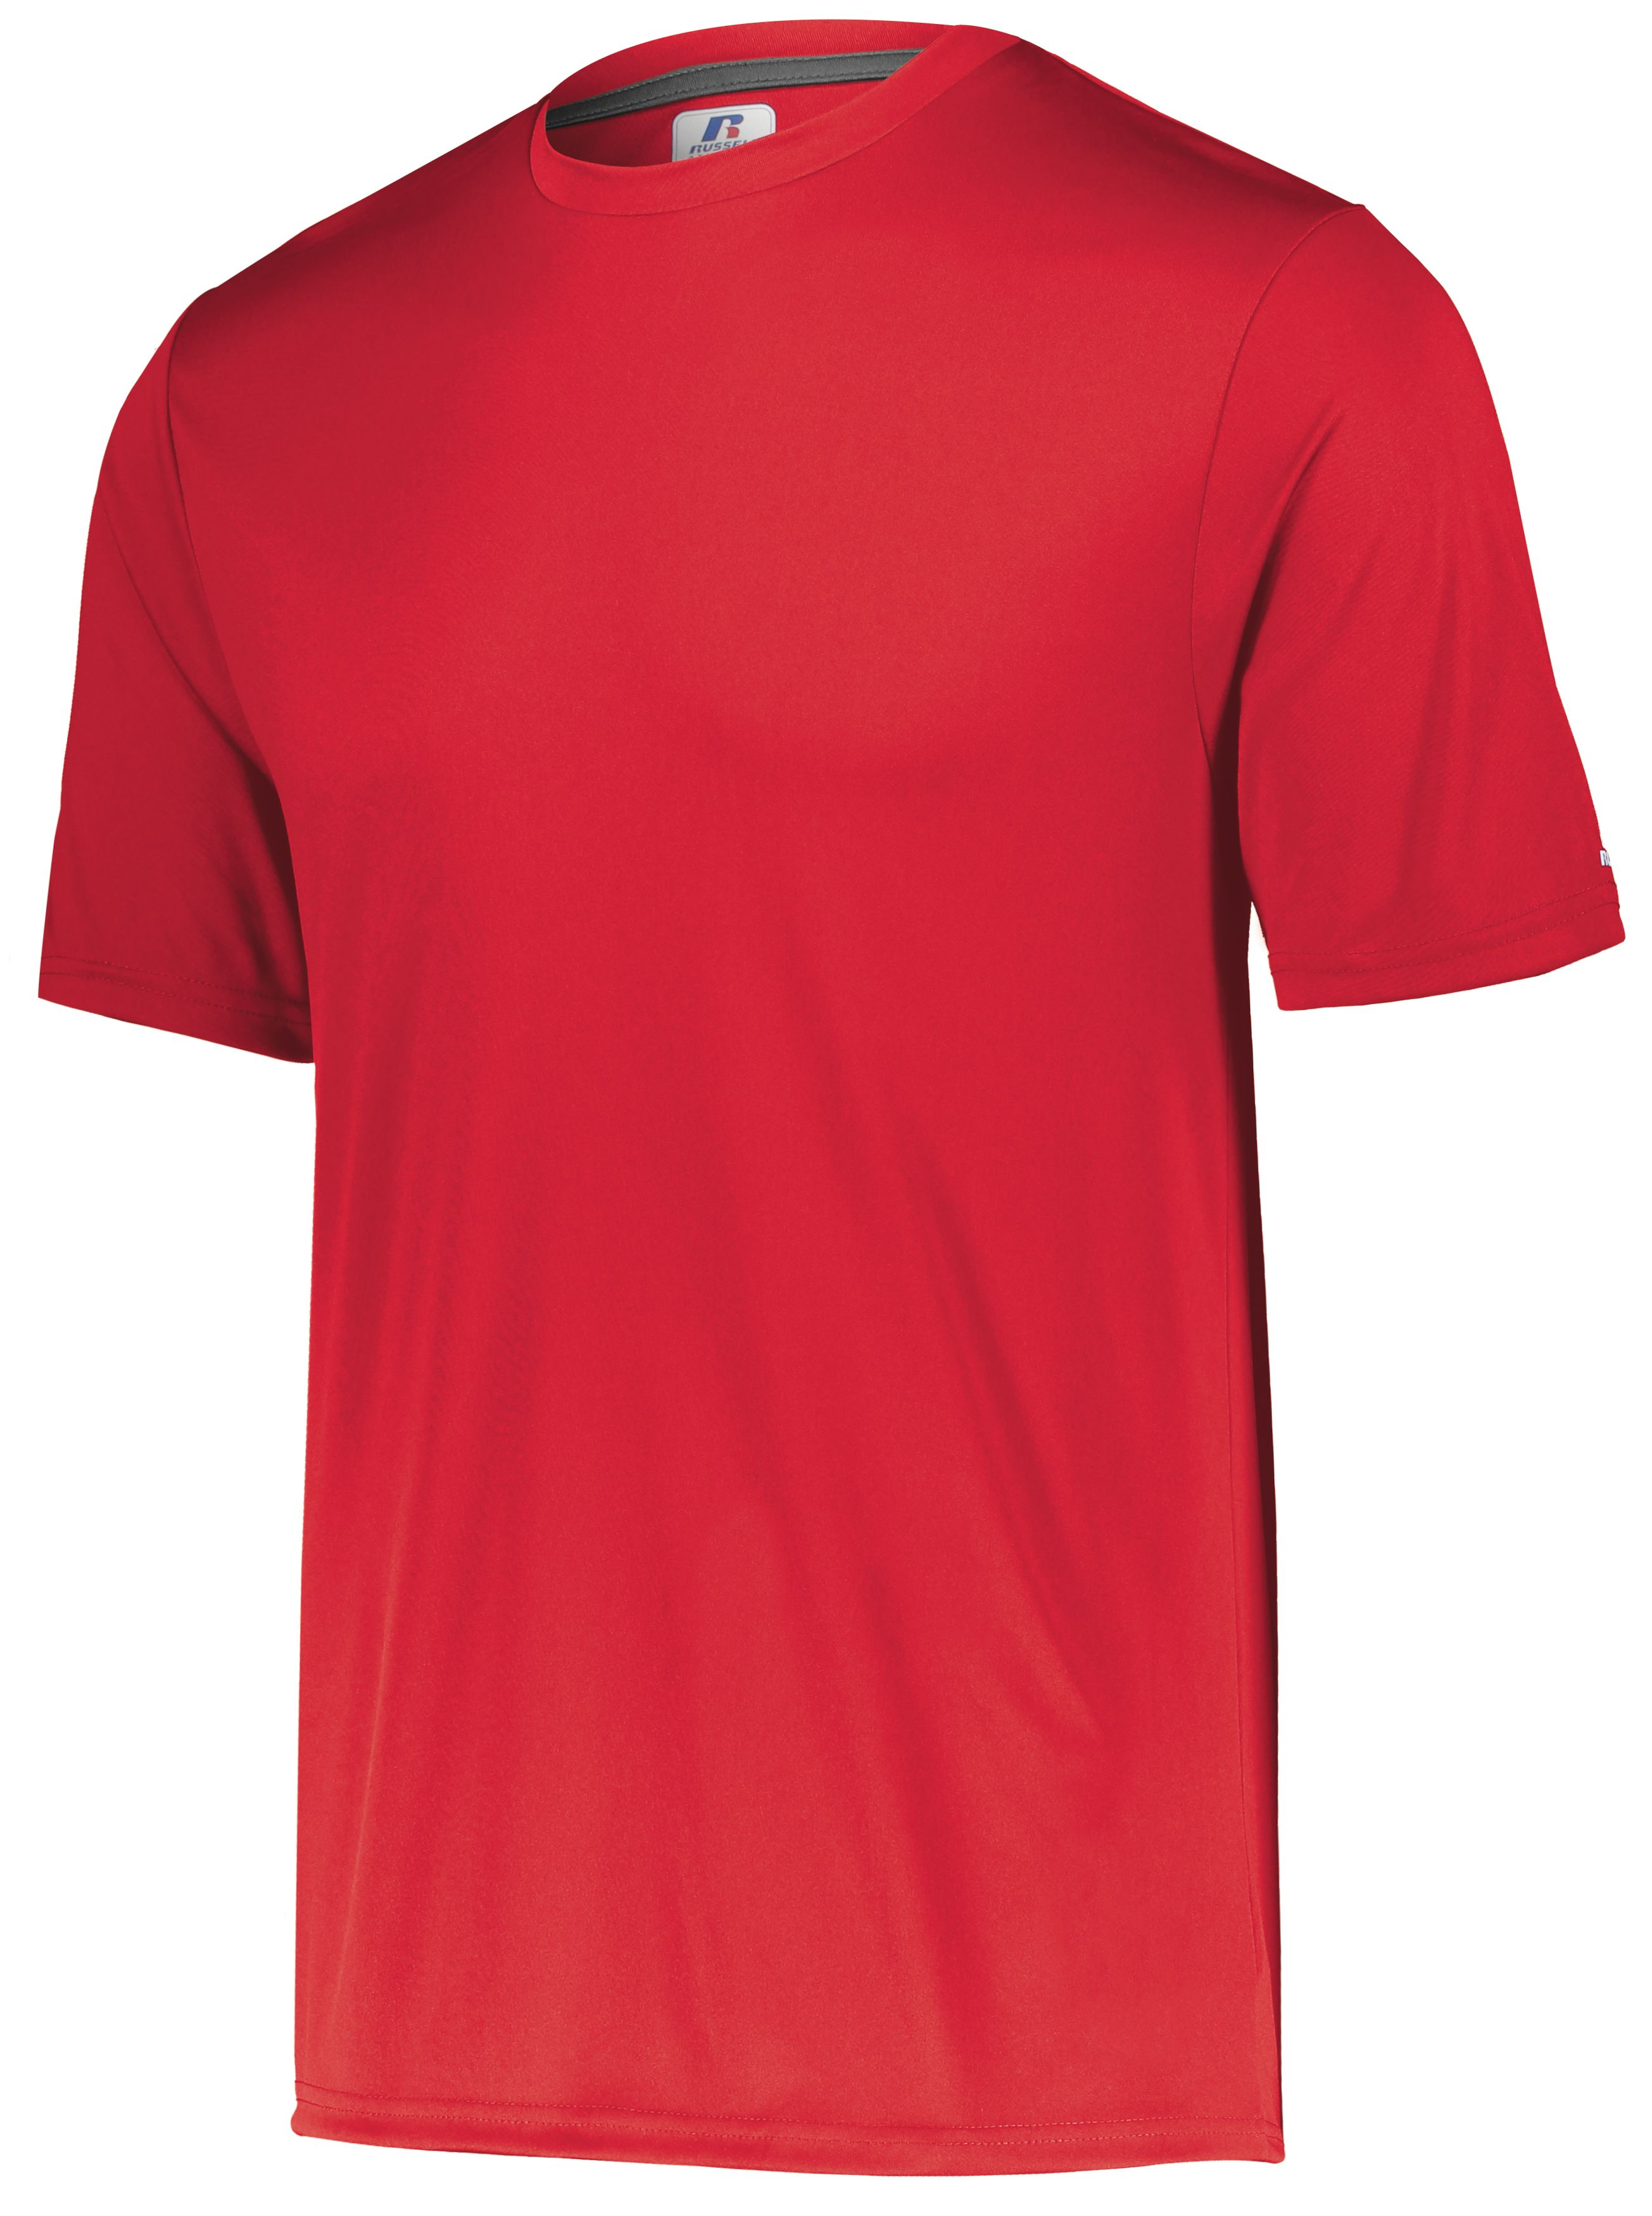 Youth Dri-Power Core Performance Tee - True Red